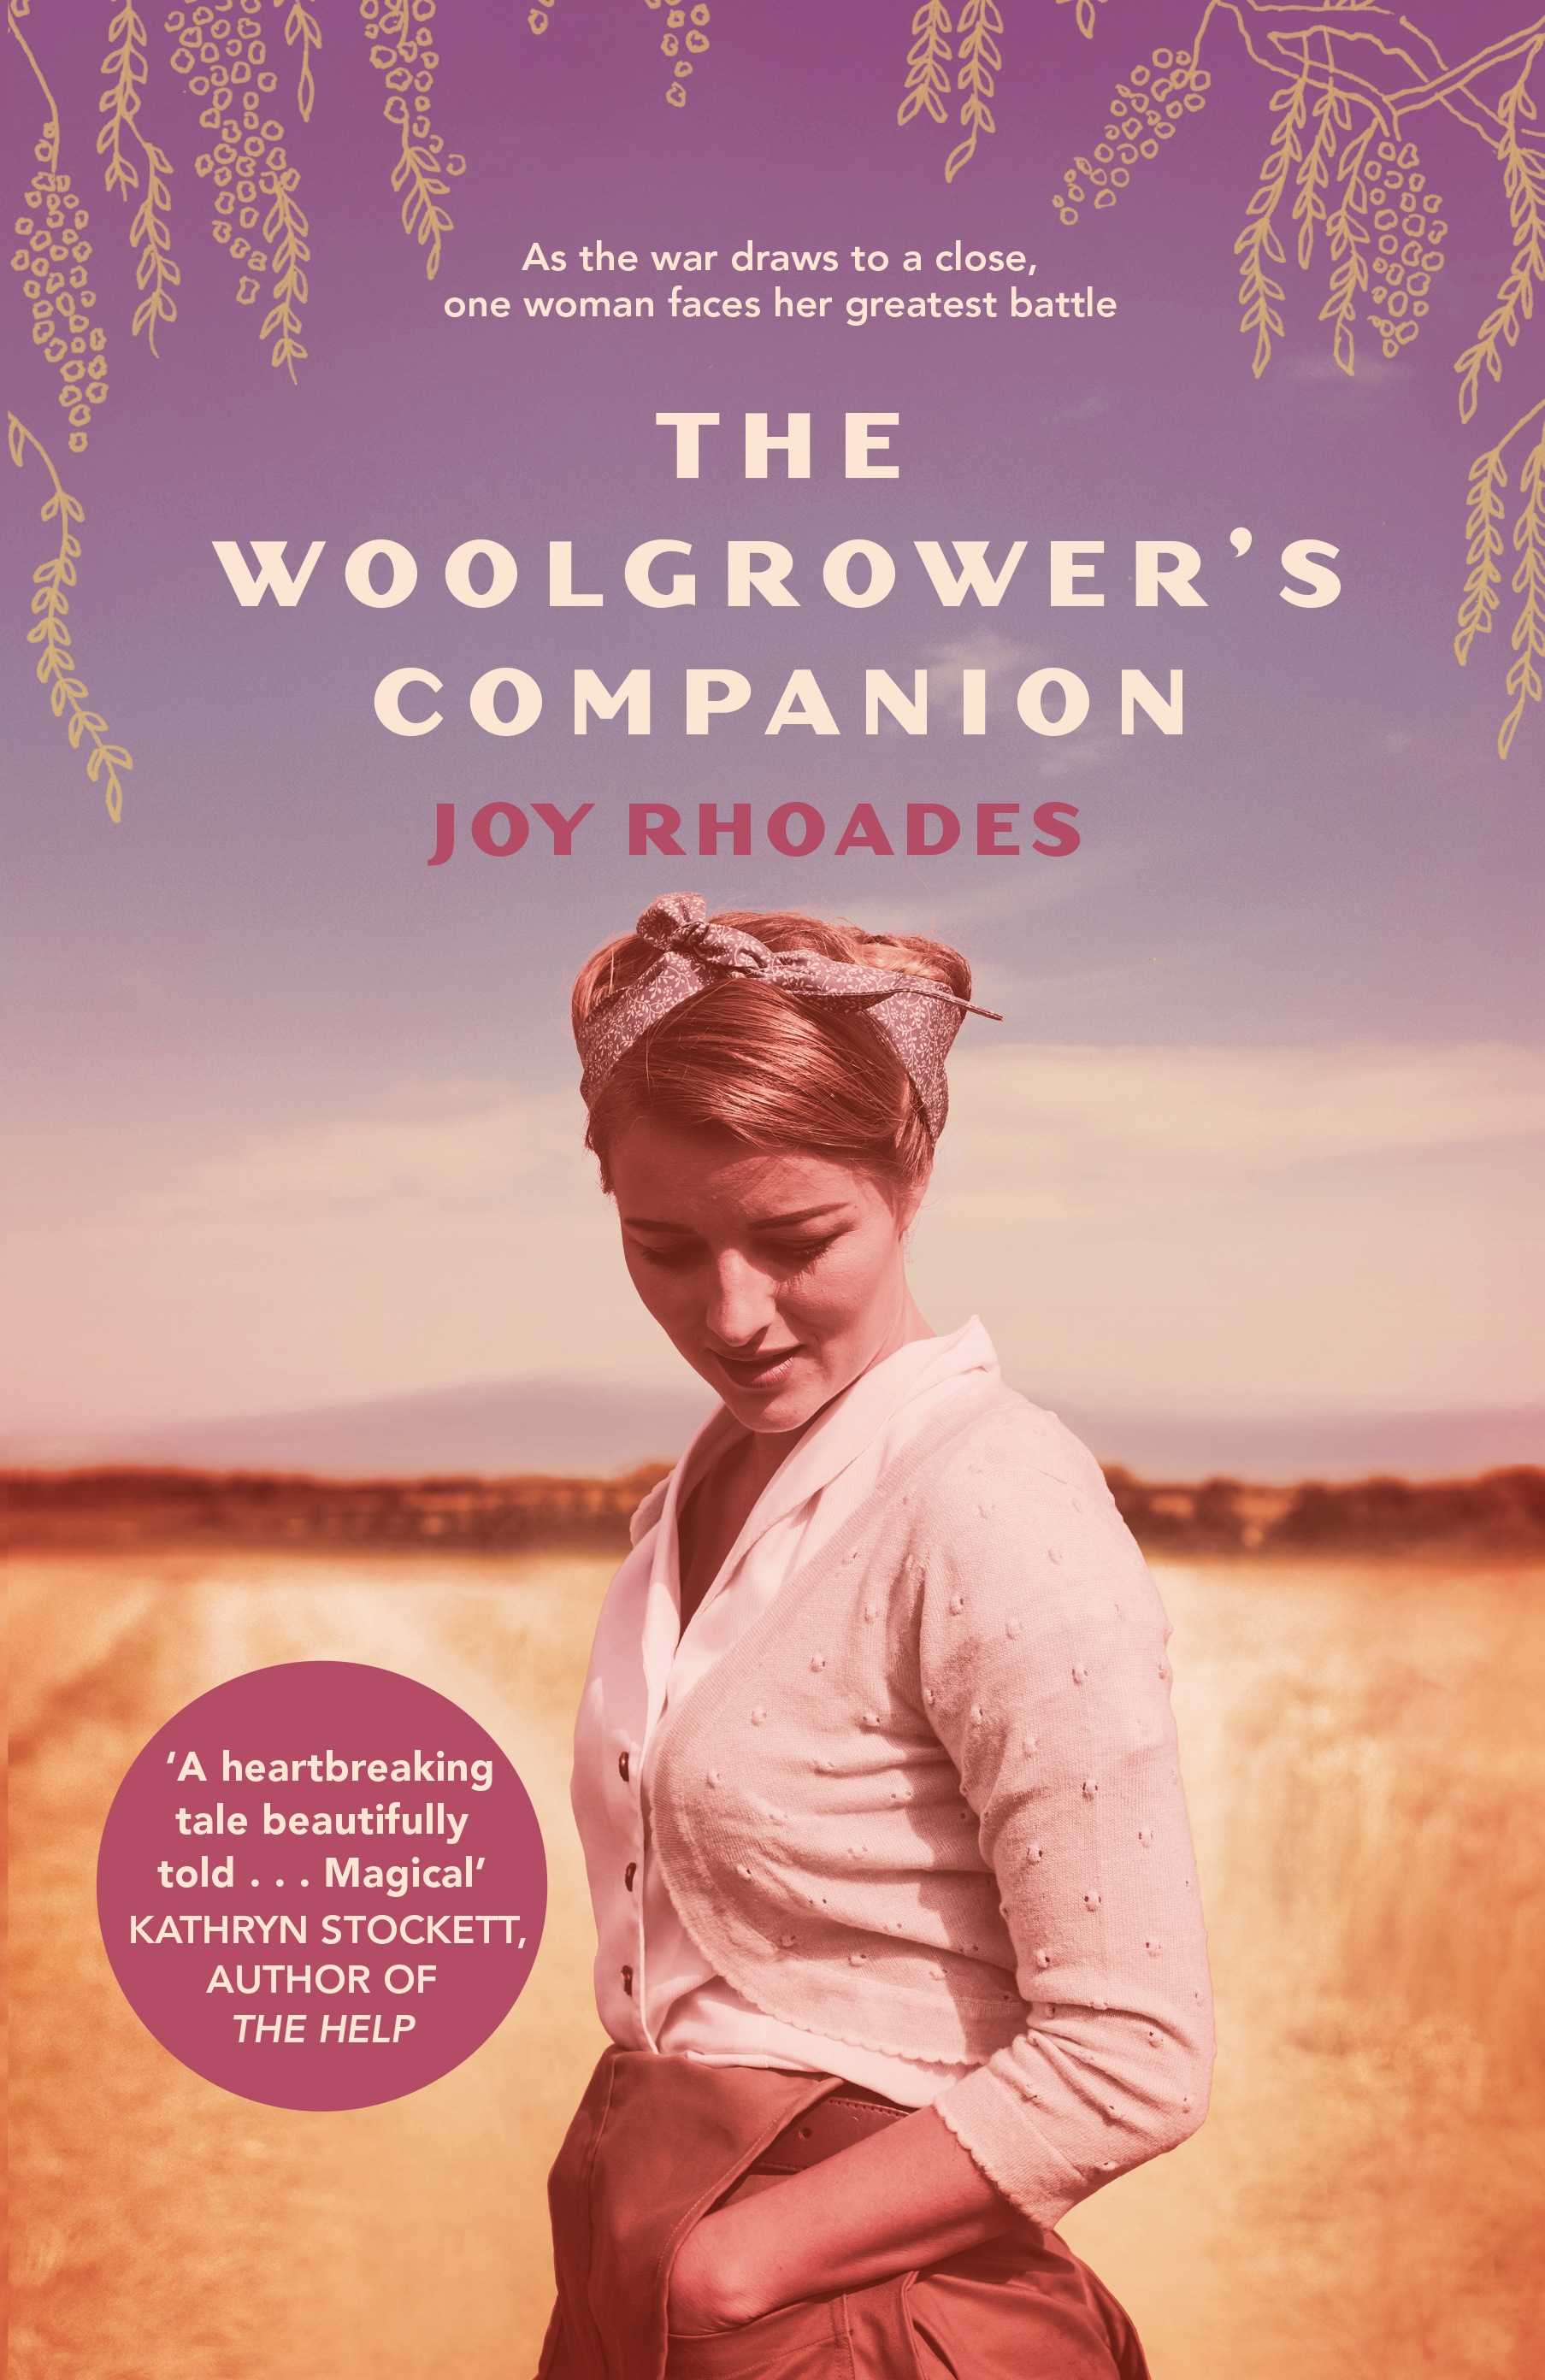 The Woolgrower's Companion by Joy Rhoades